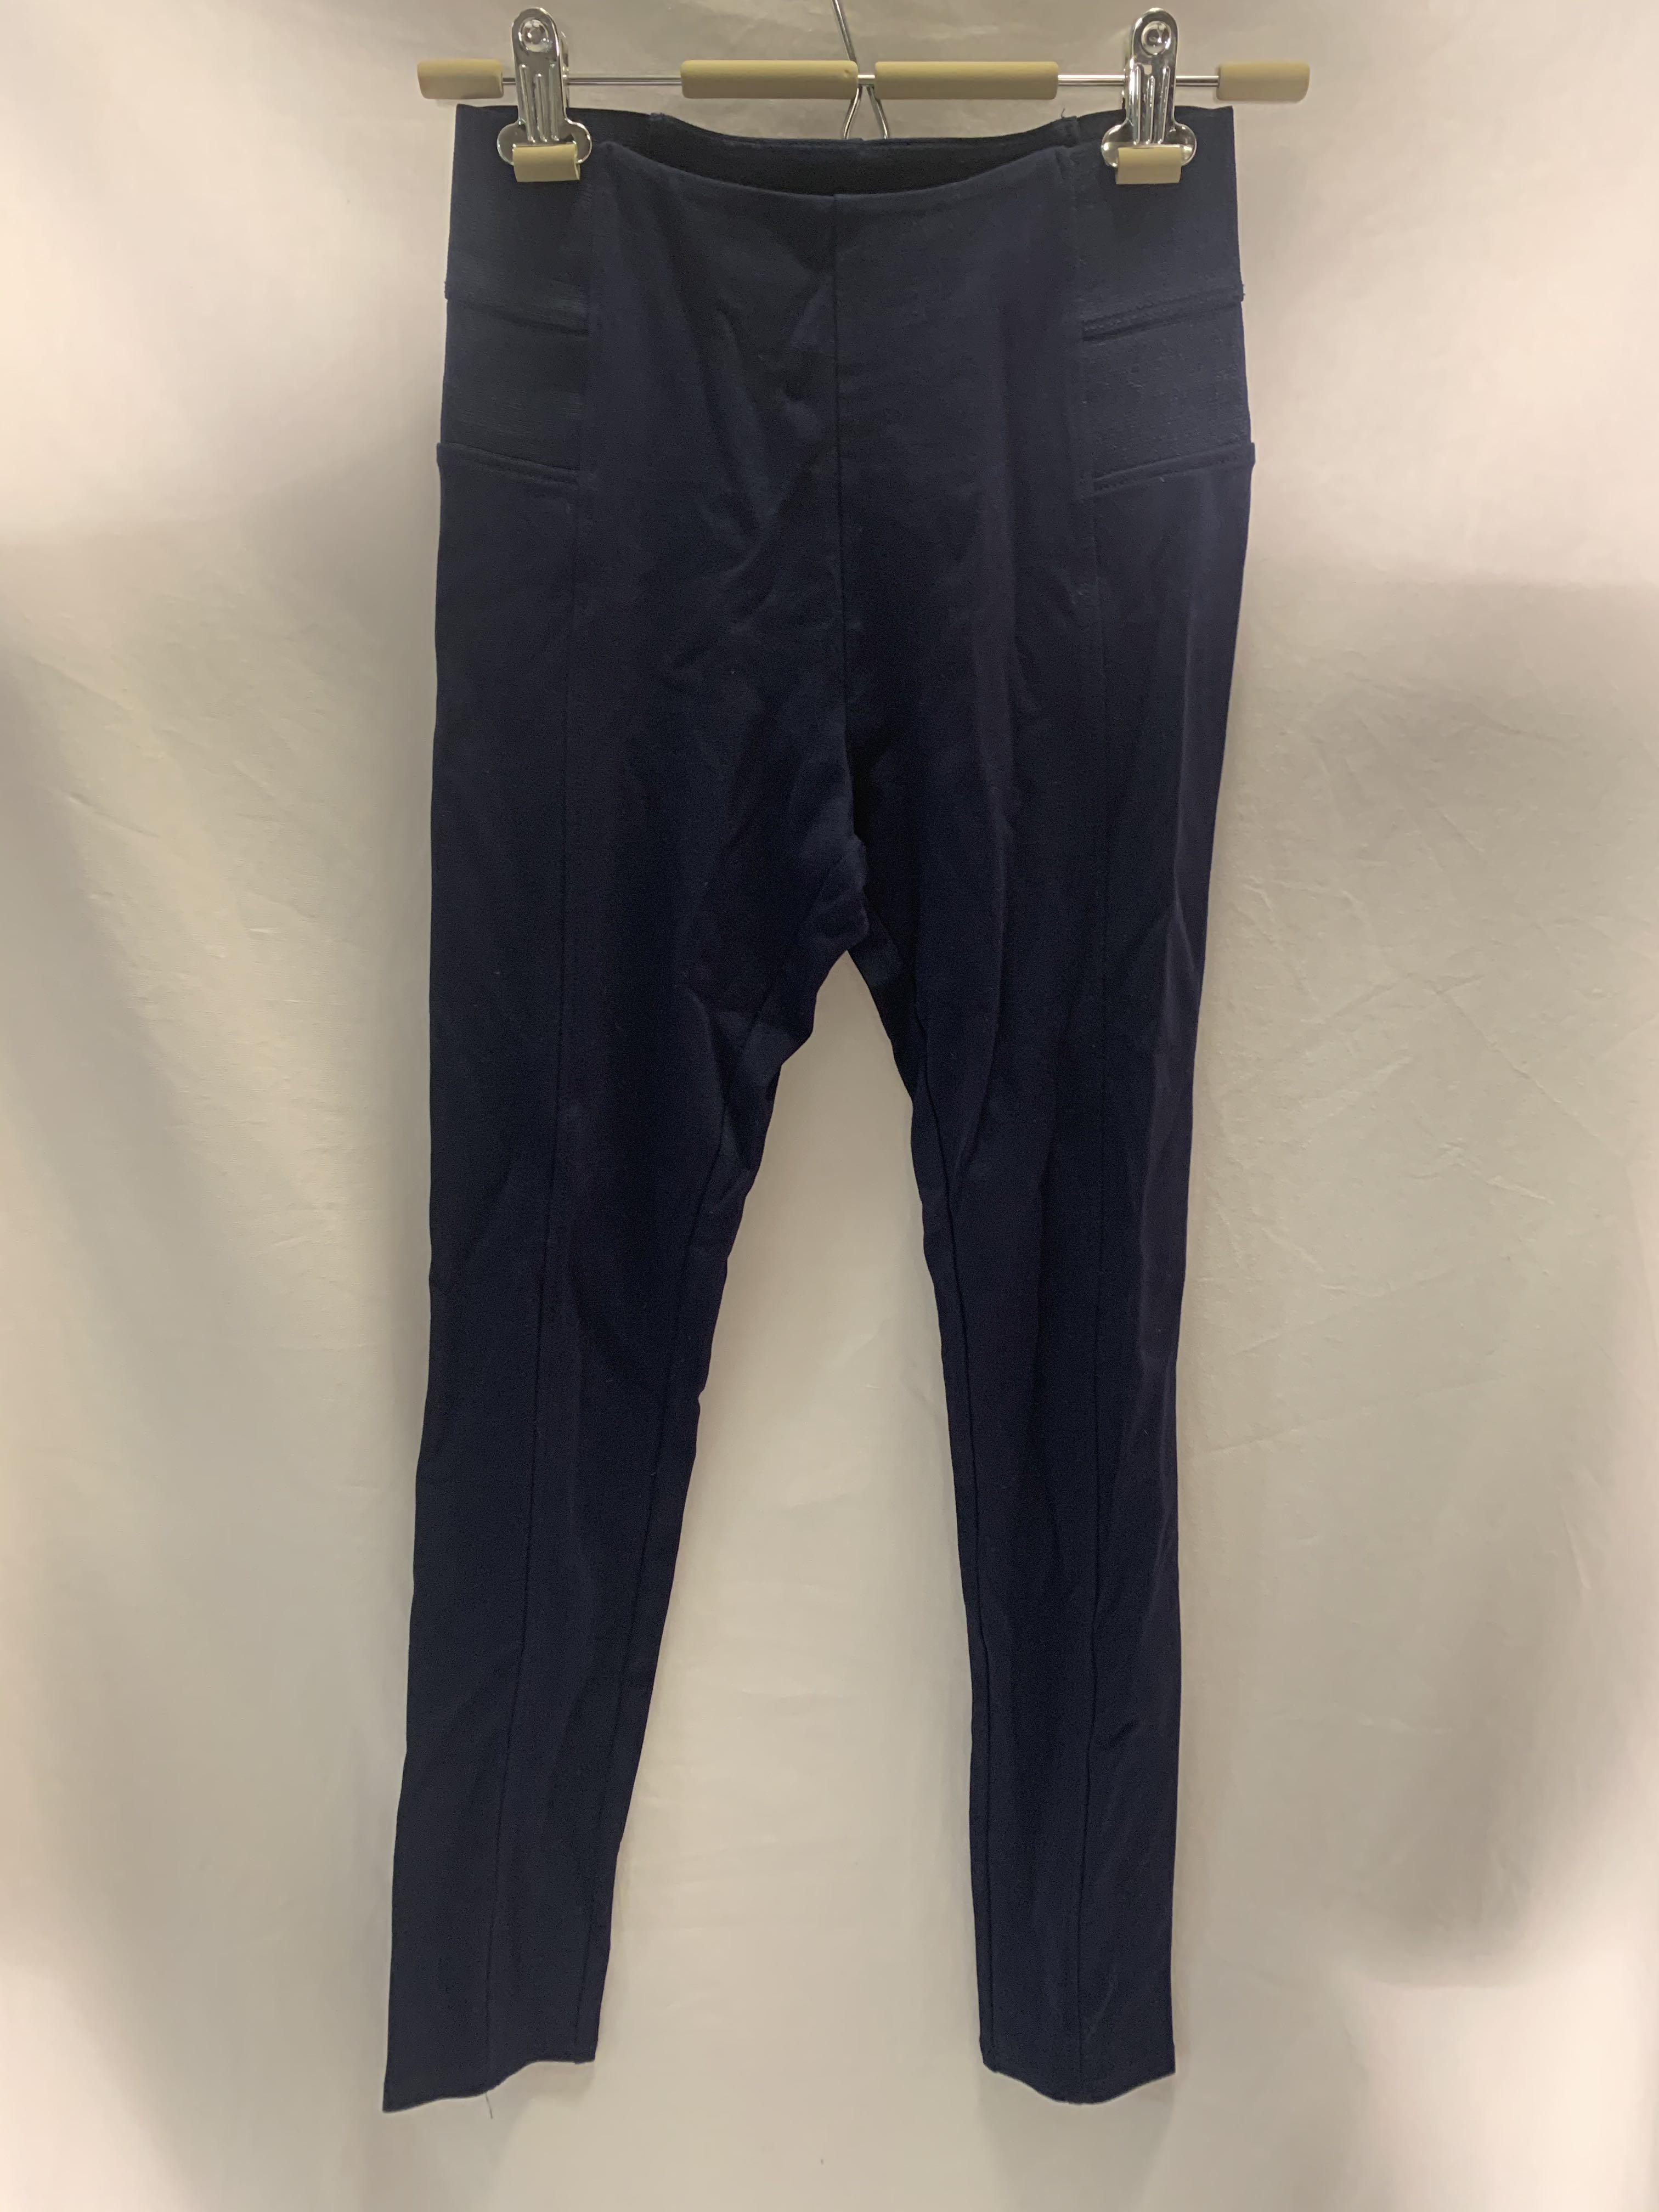 Guess leggings - size S - never worn